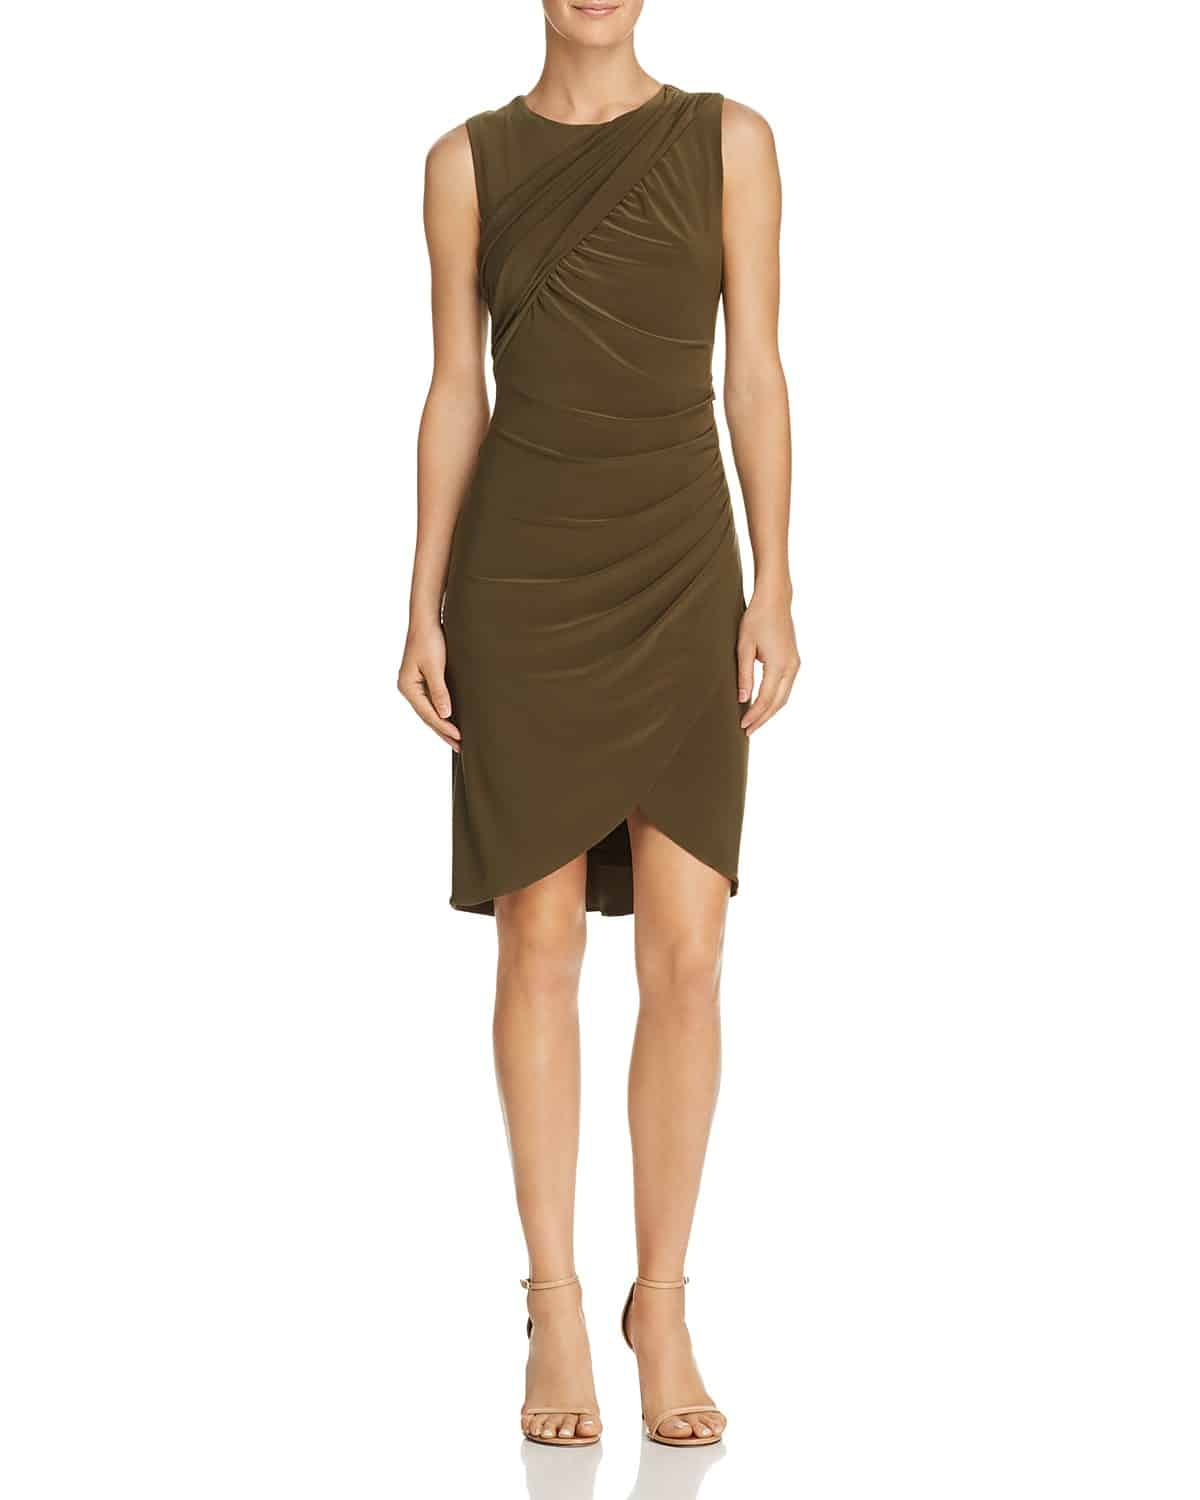 Neutral olive dress